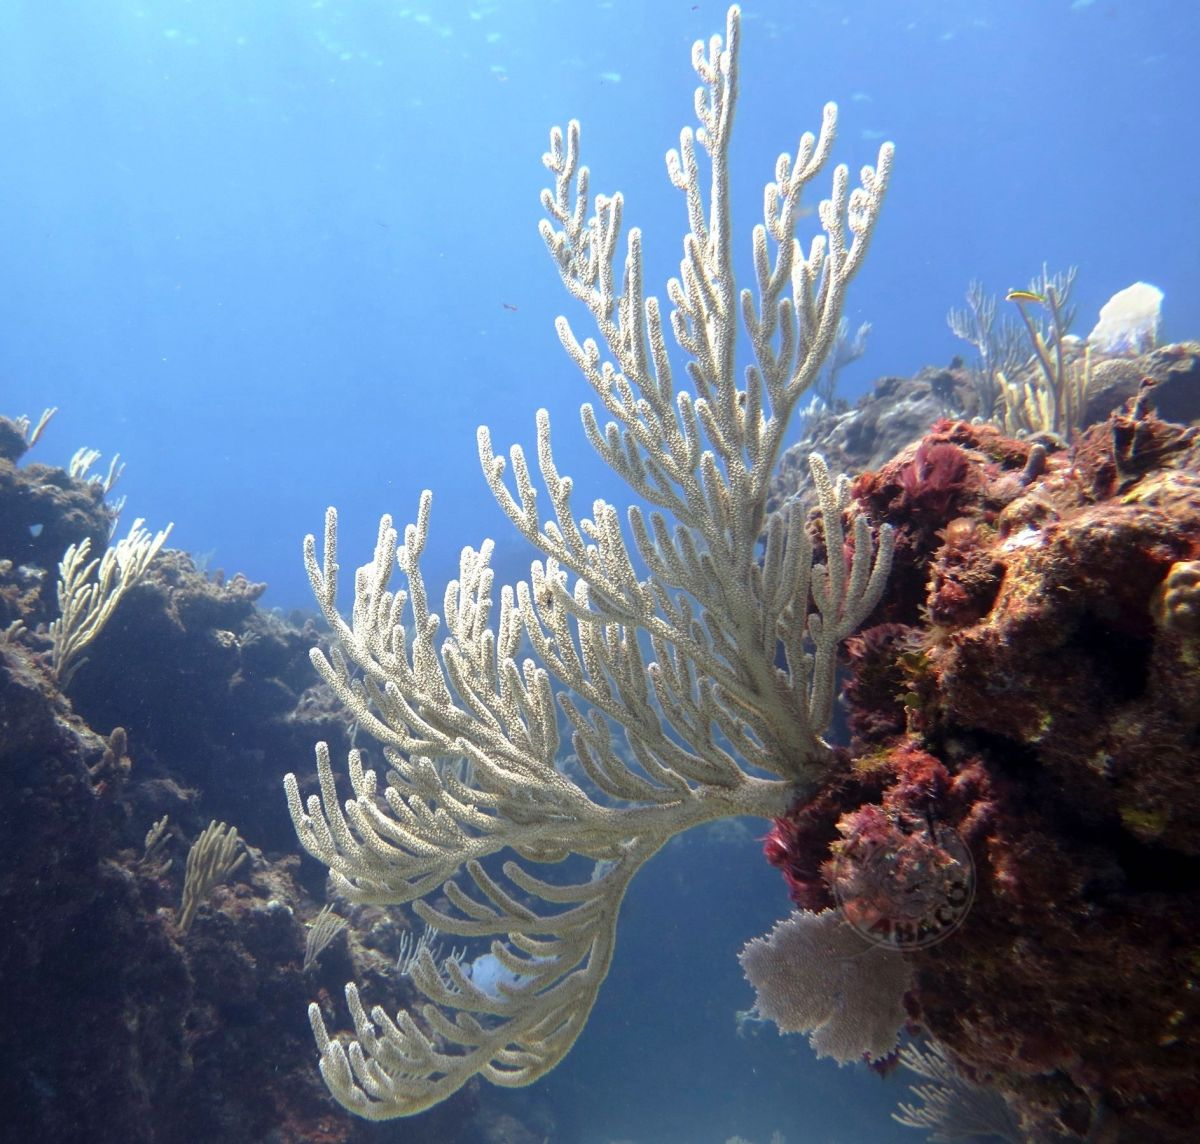 Reef Corals, Abaco Bahamas (Melinda Rogers / Dive Abaco)